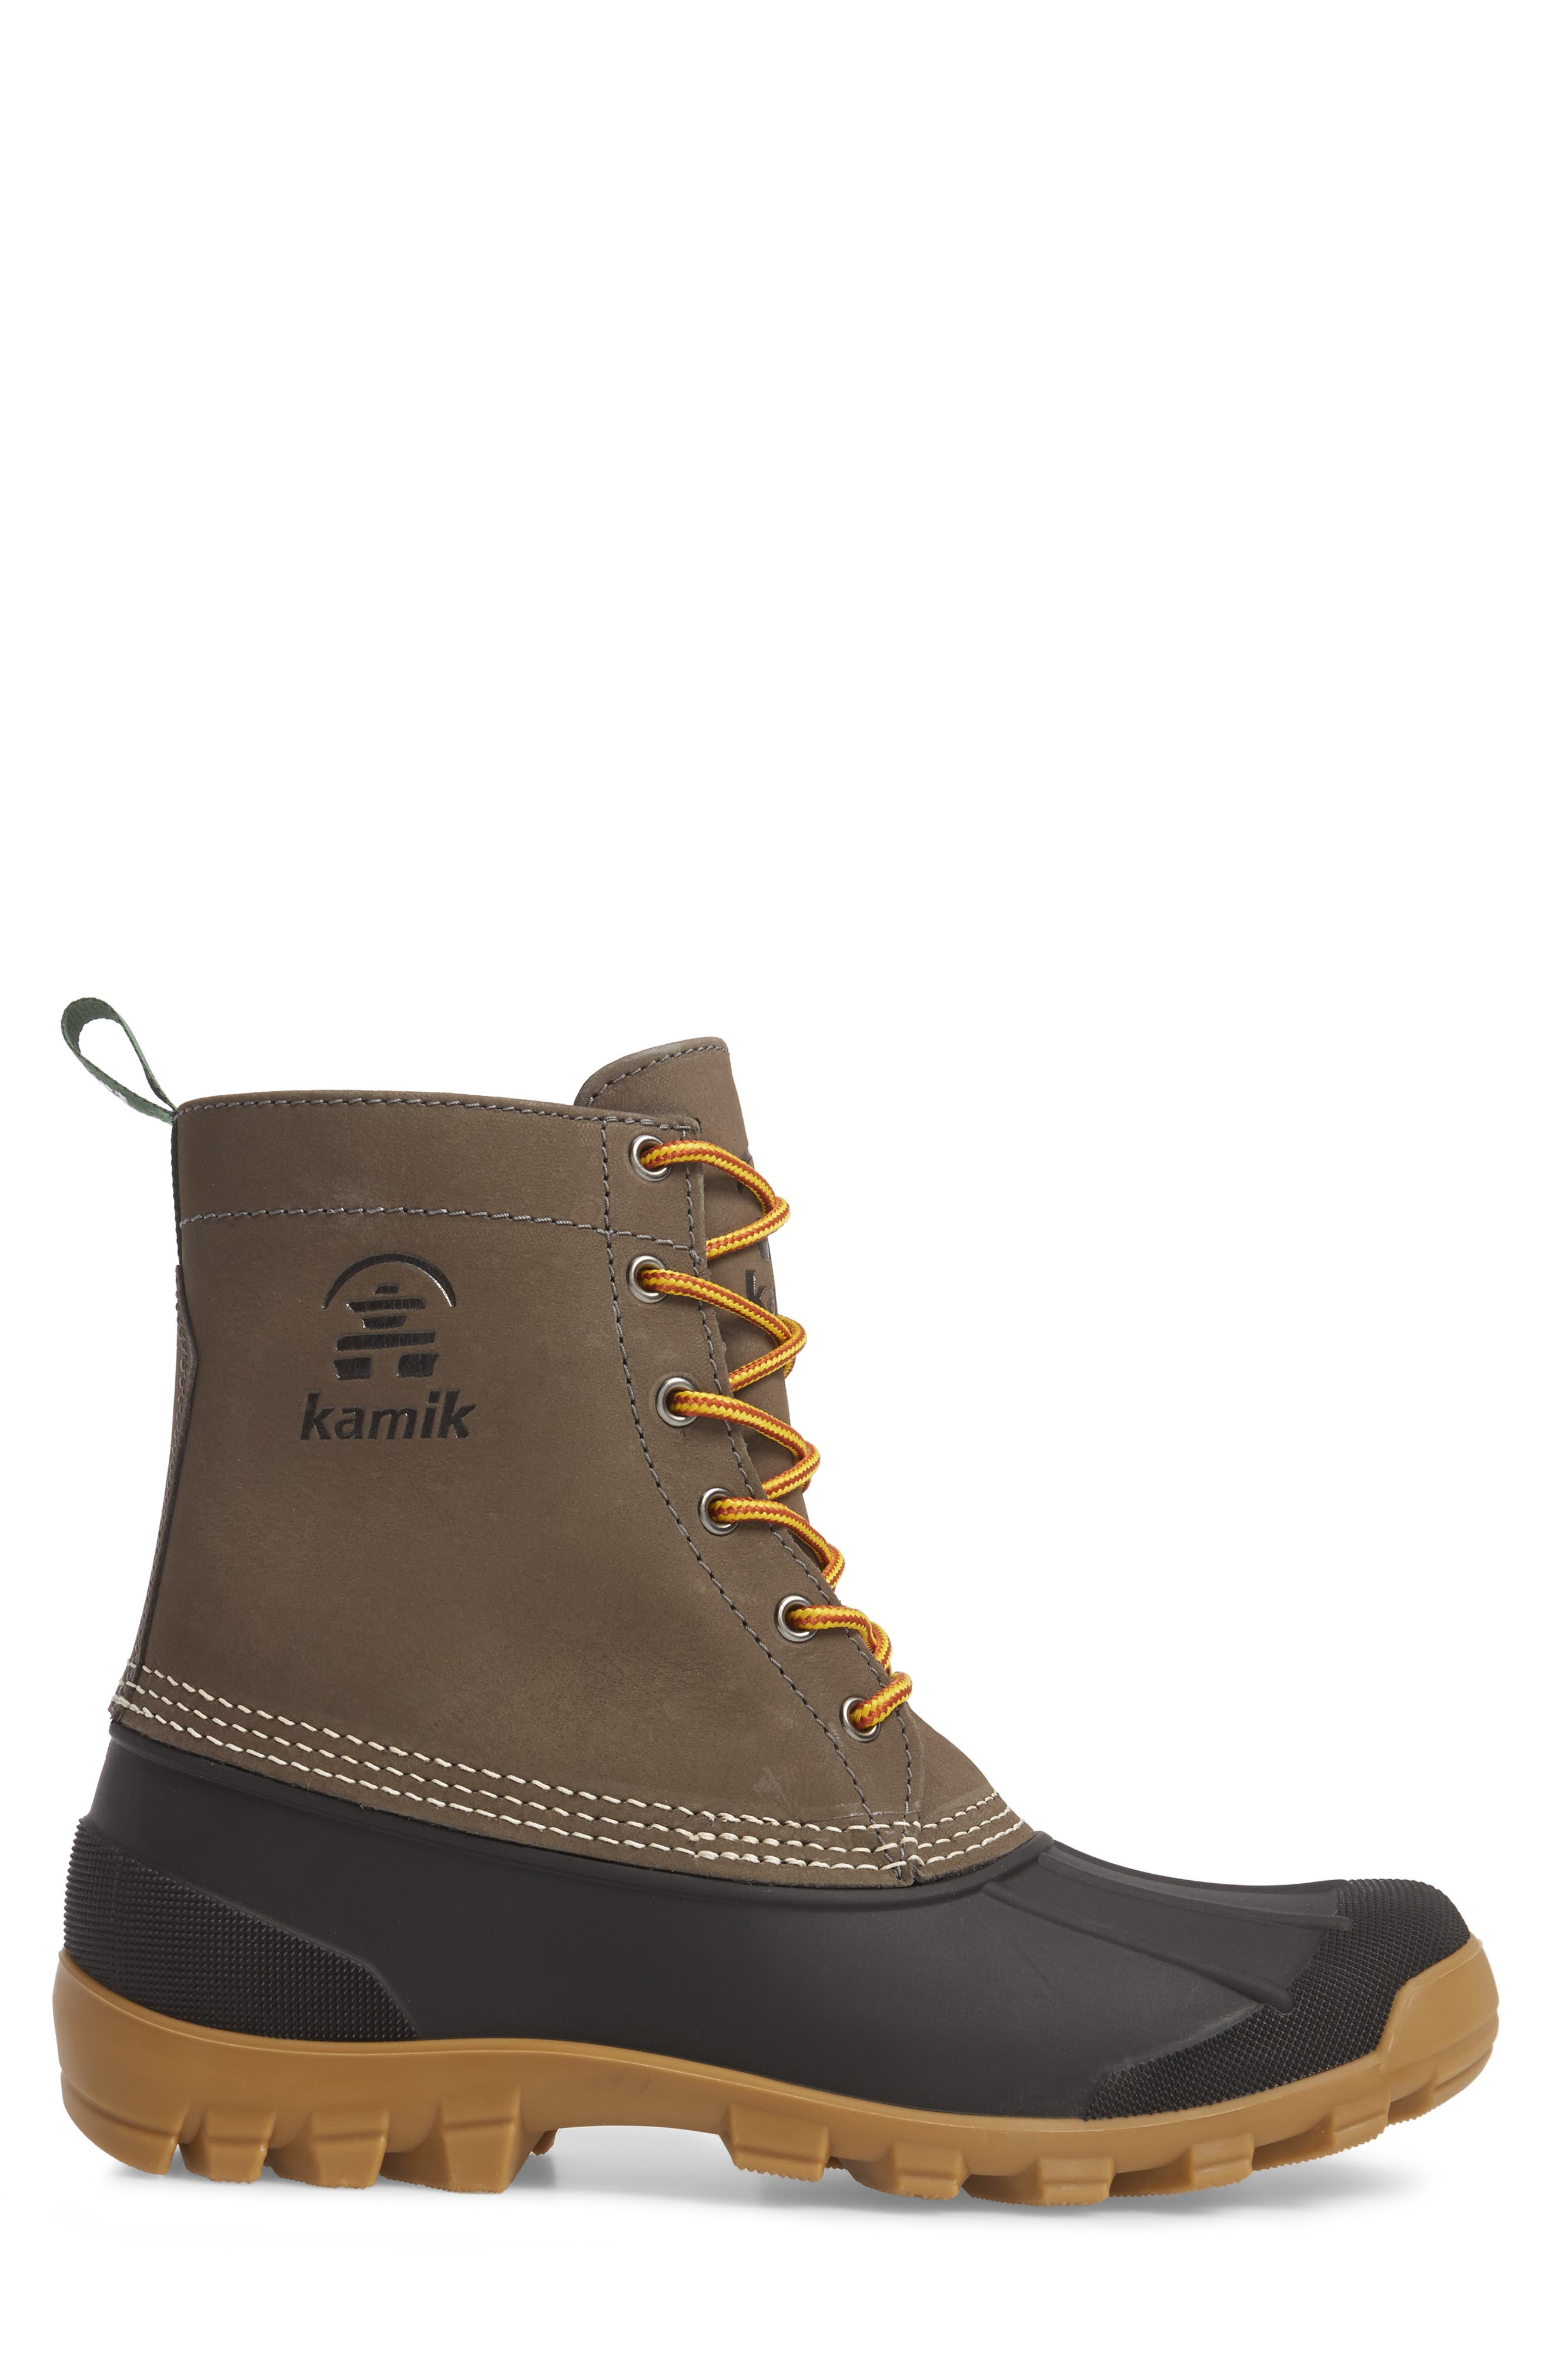 Yukon 6 Waterproof Insulated Three-Season Boot,                             Alternate thumbnail 3, color,                             CHARCOAL LEATHER